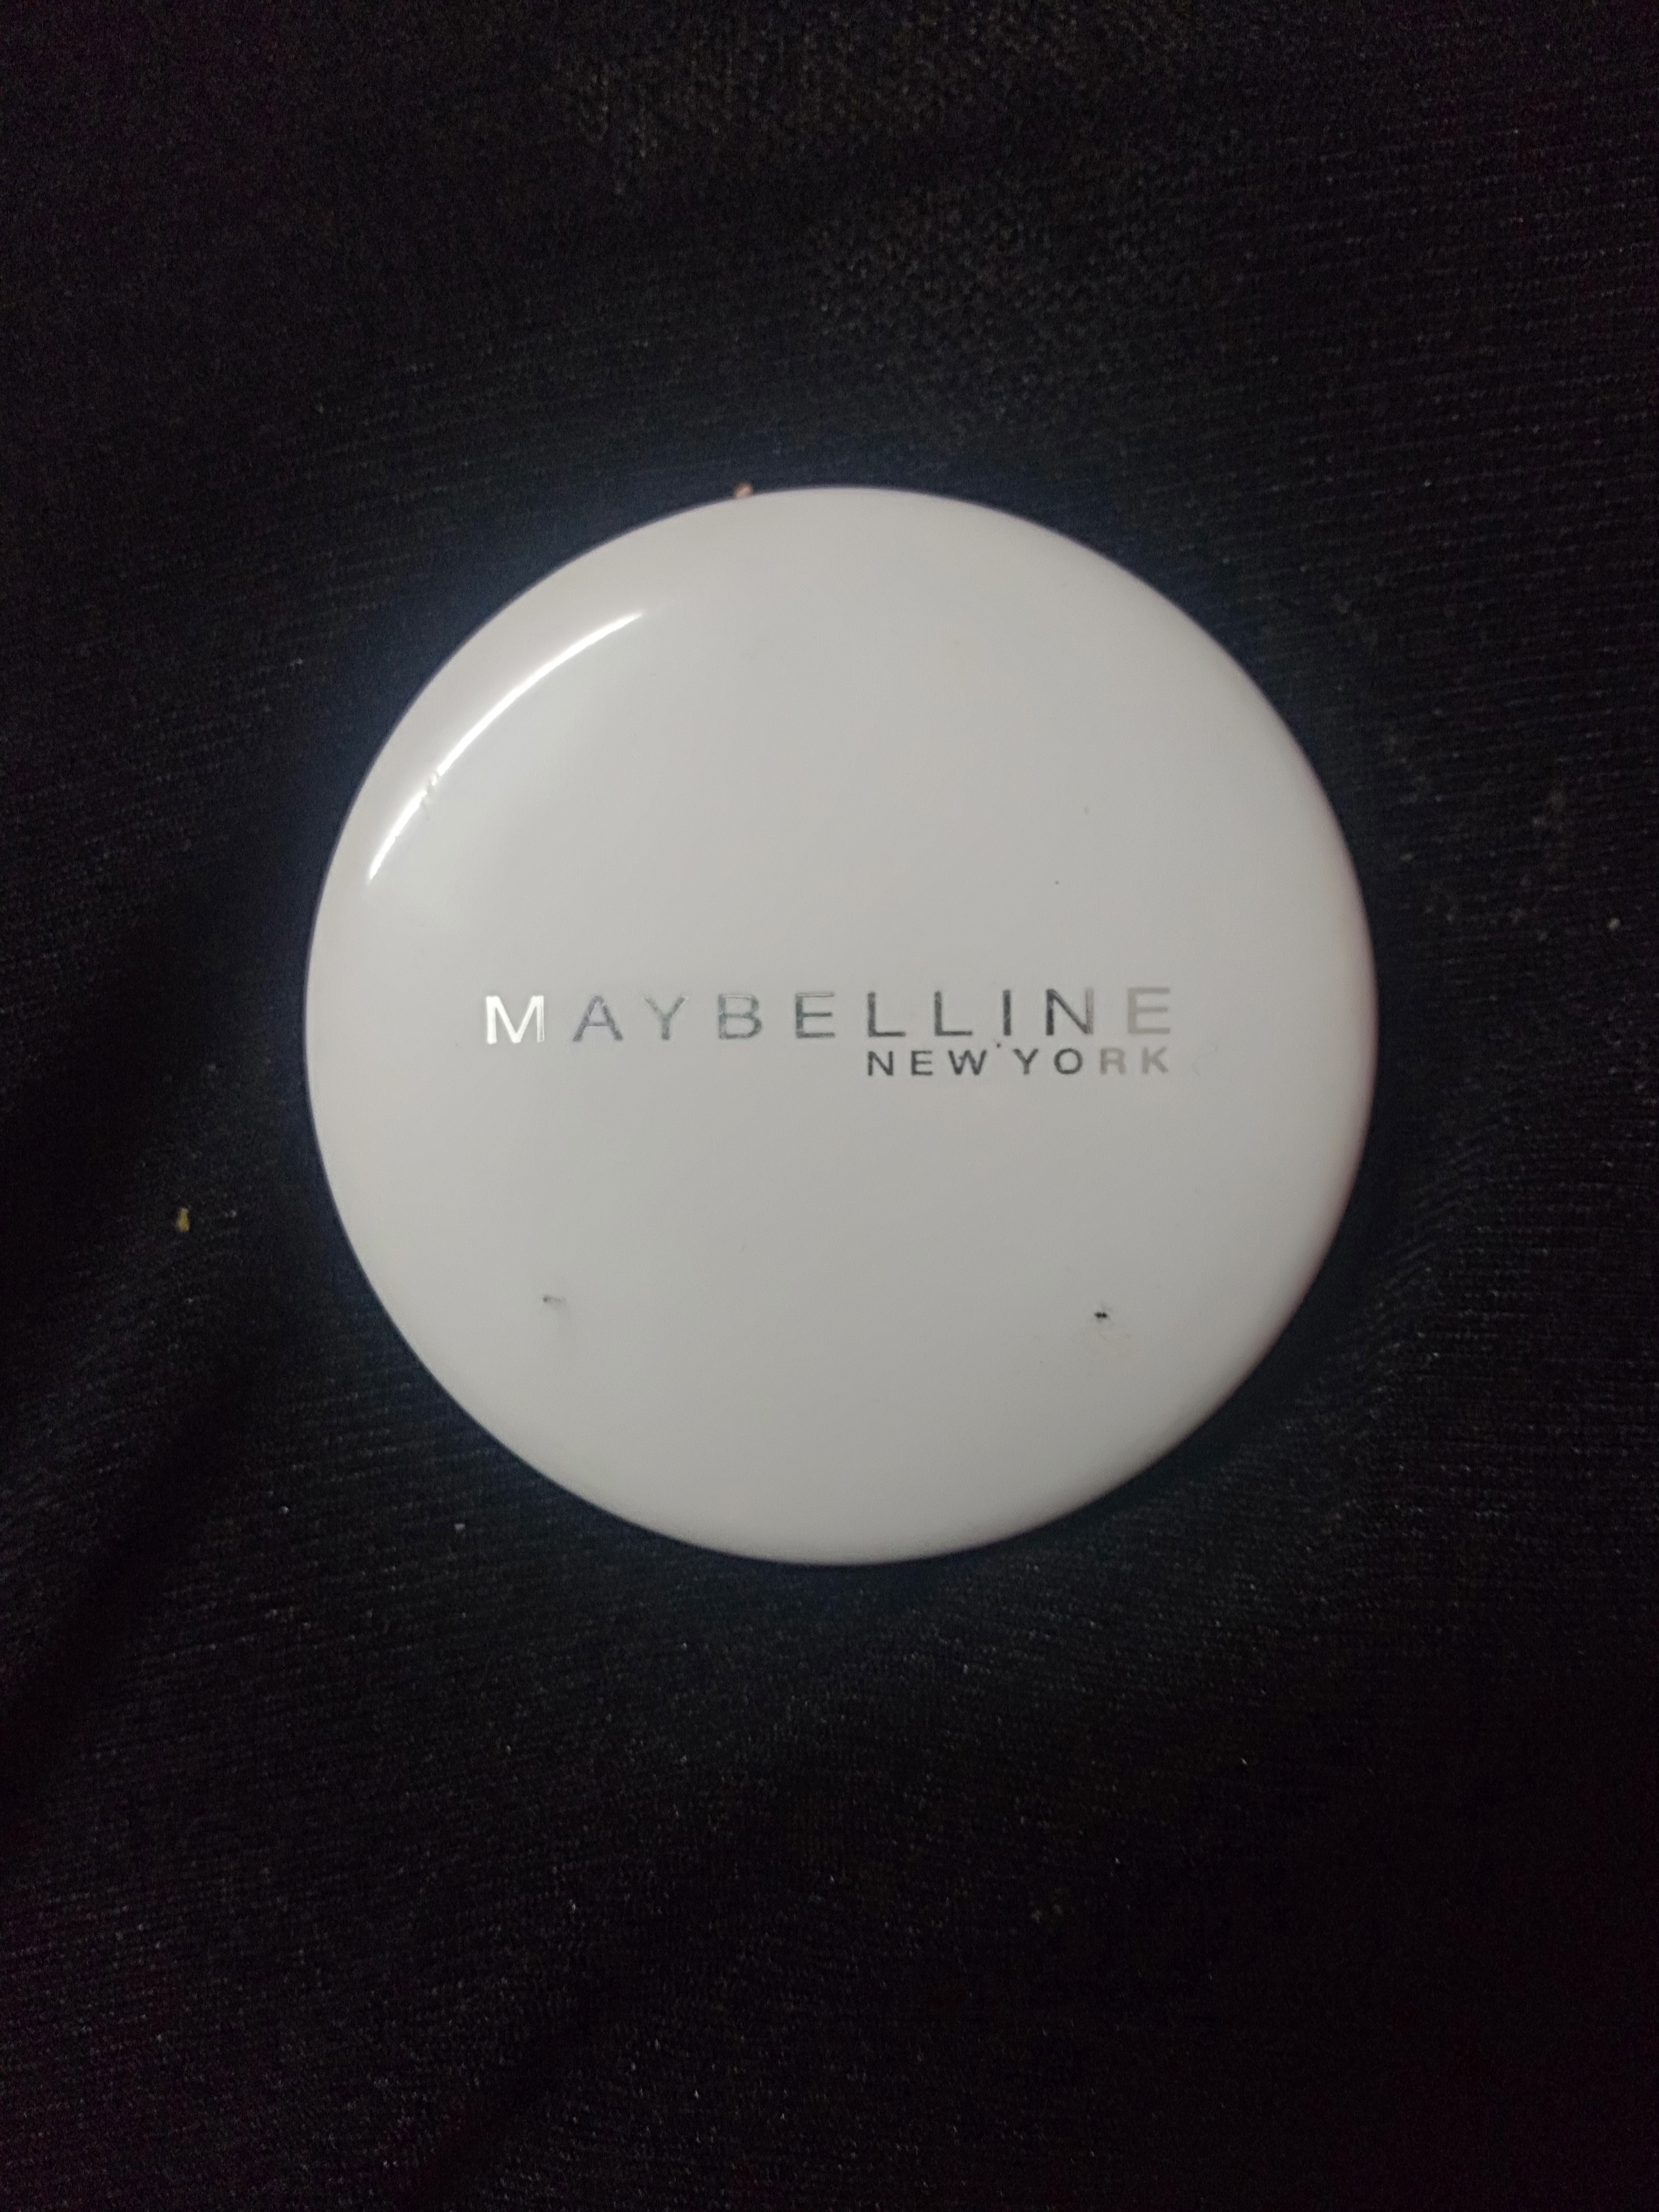 Maybelline New York White Super Fresh Compact-Super fresh…the name says it all-By nimmythomas35-1